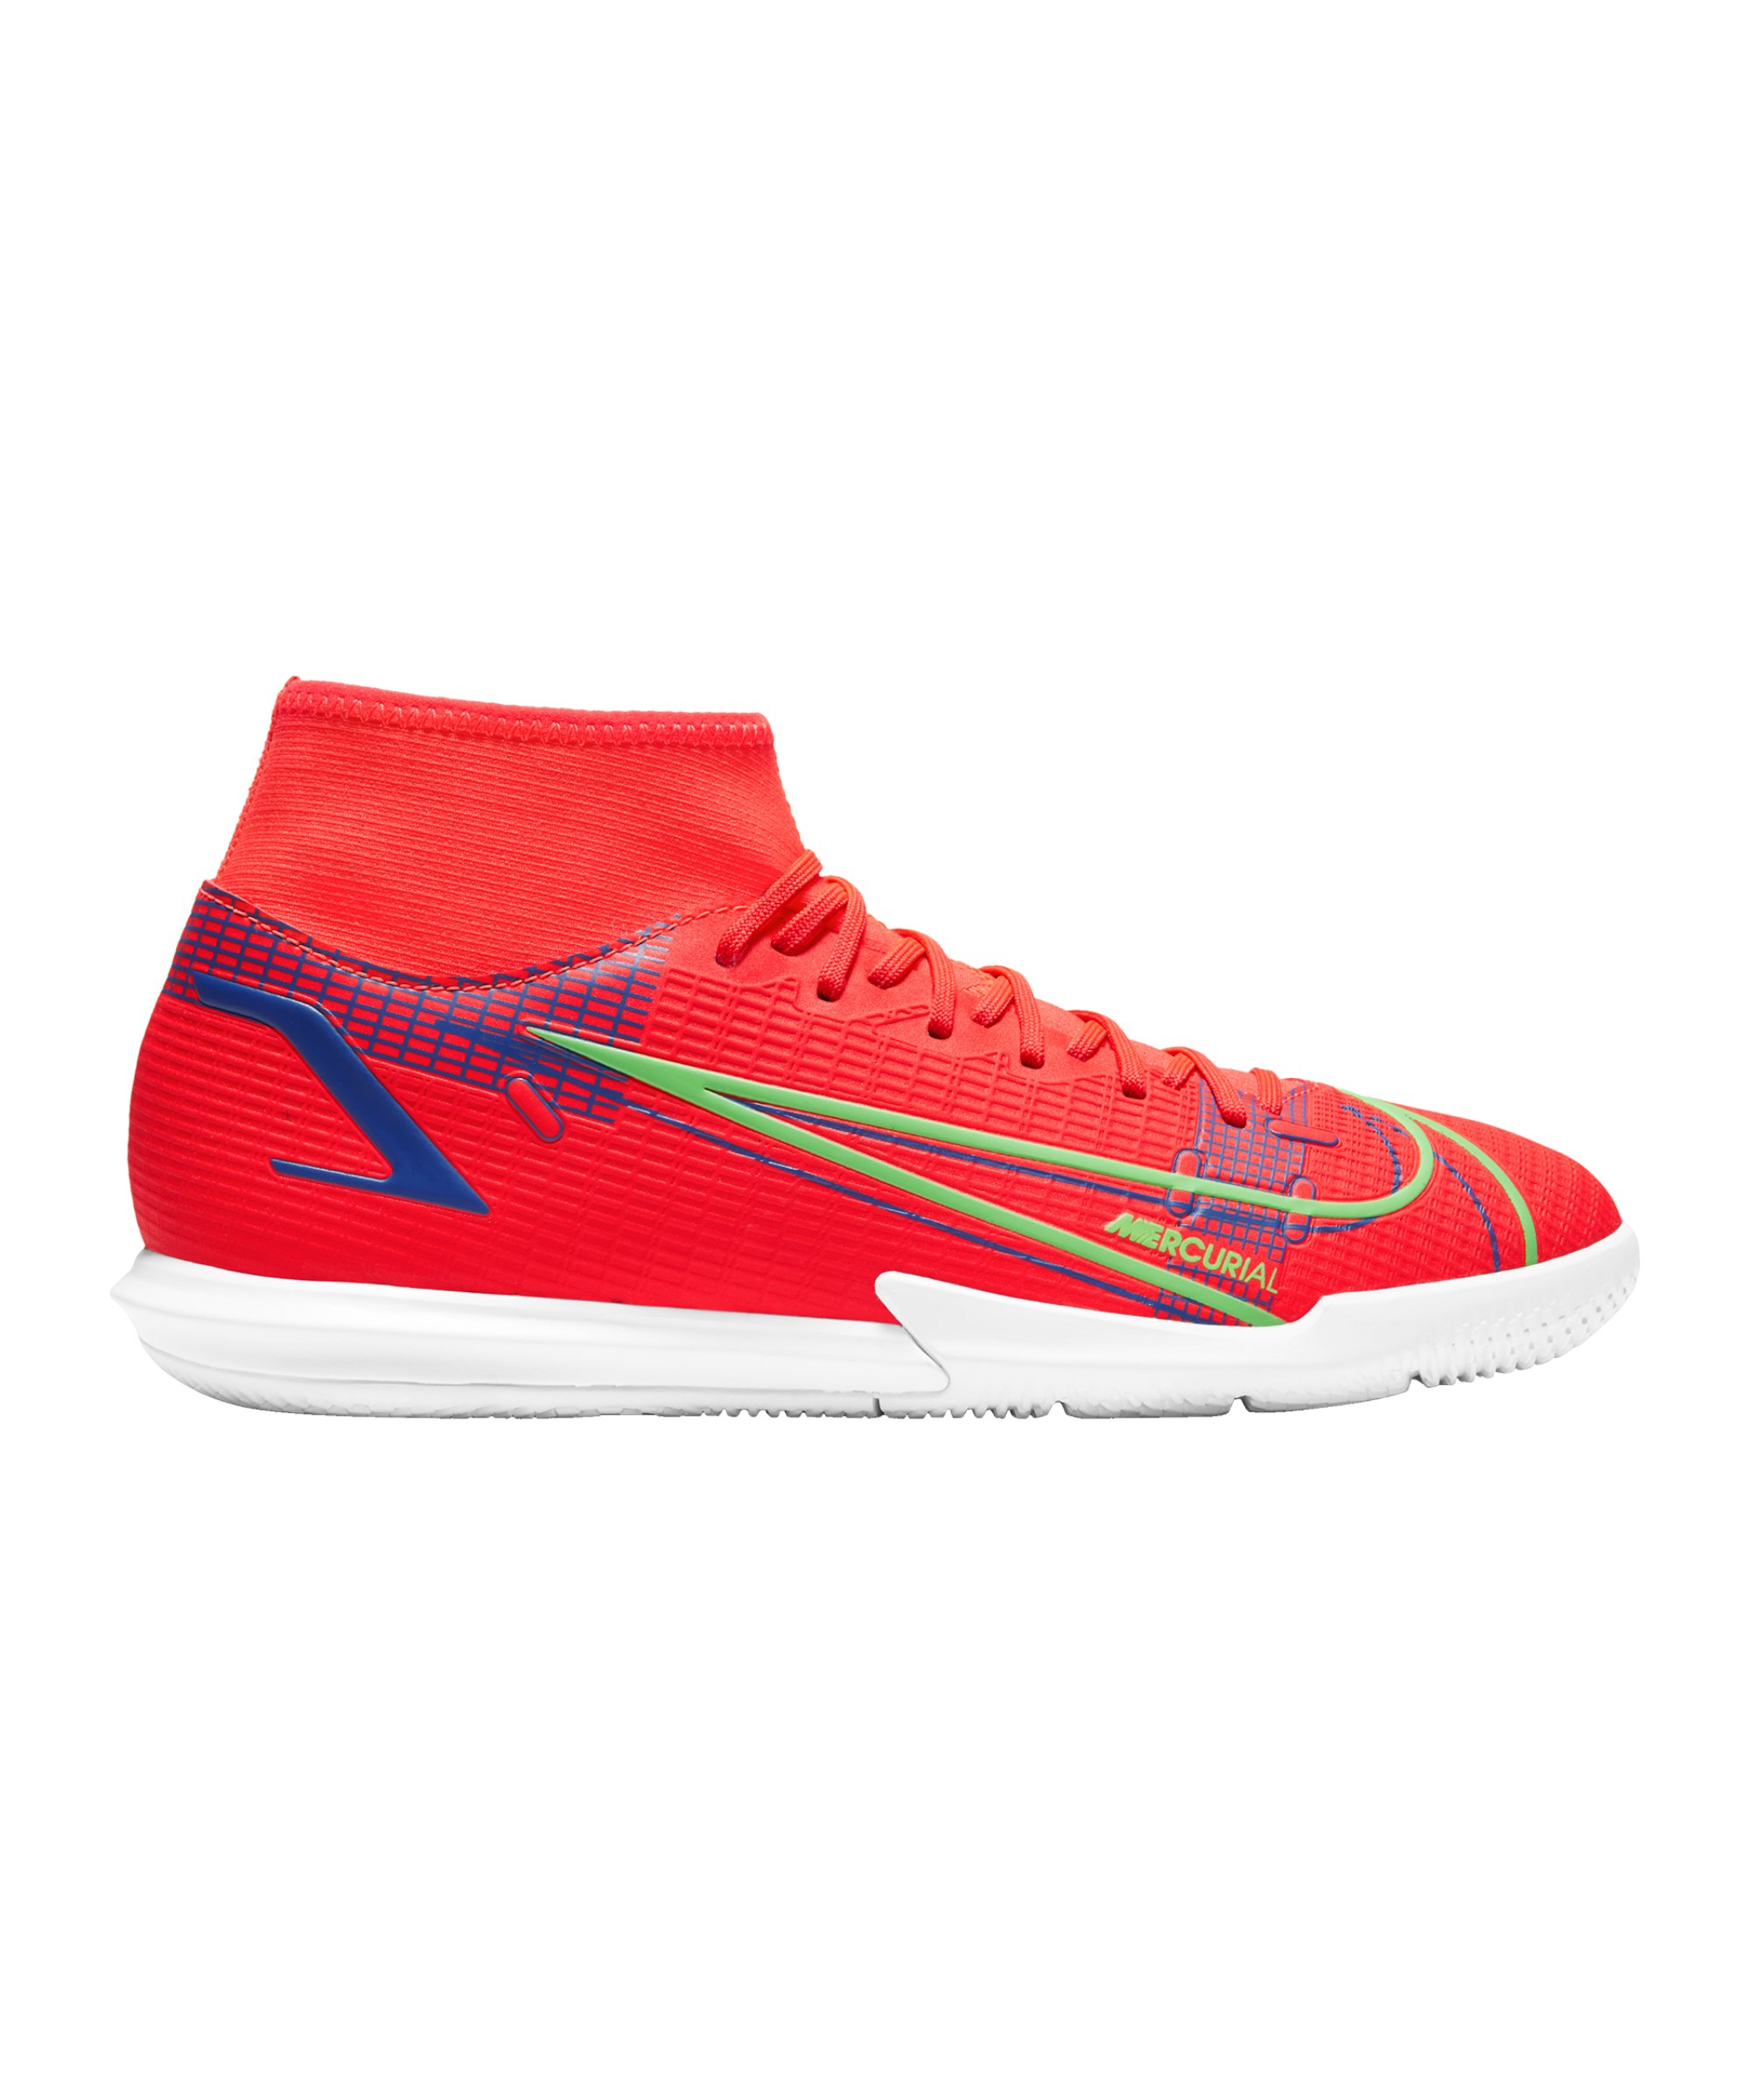 Nike Mercurial Superfly VIII Spectrum Academy IC Rot F600 - rot